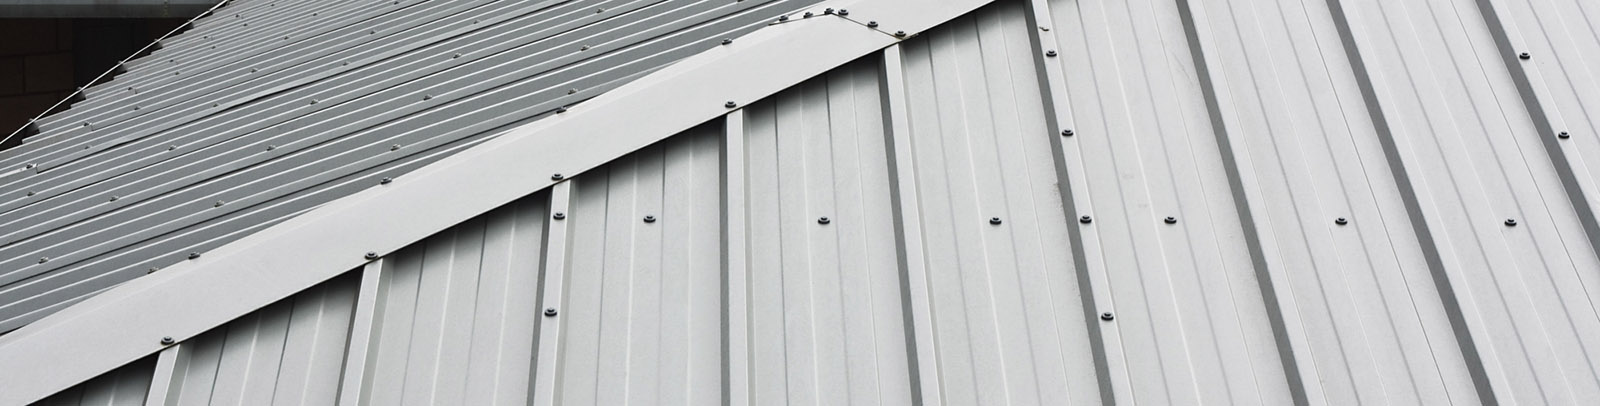 Metal roof in gray silver color